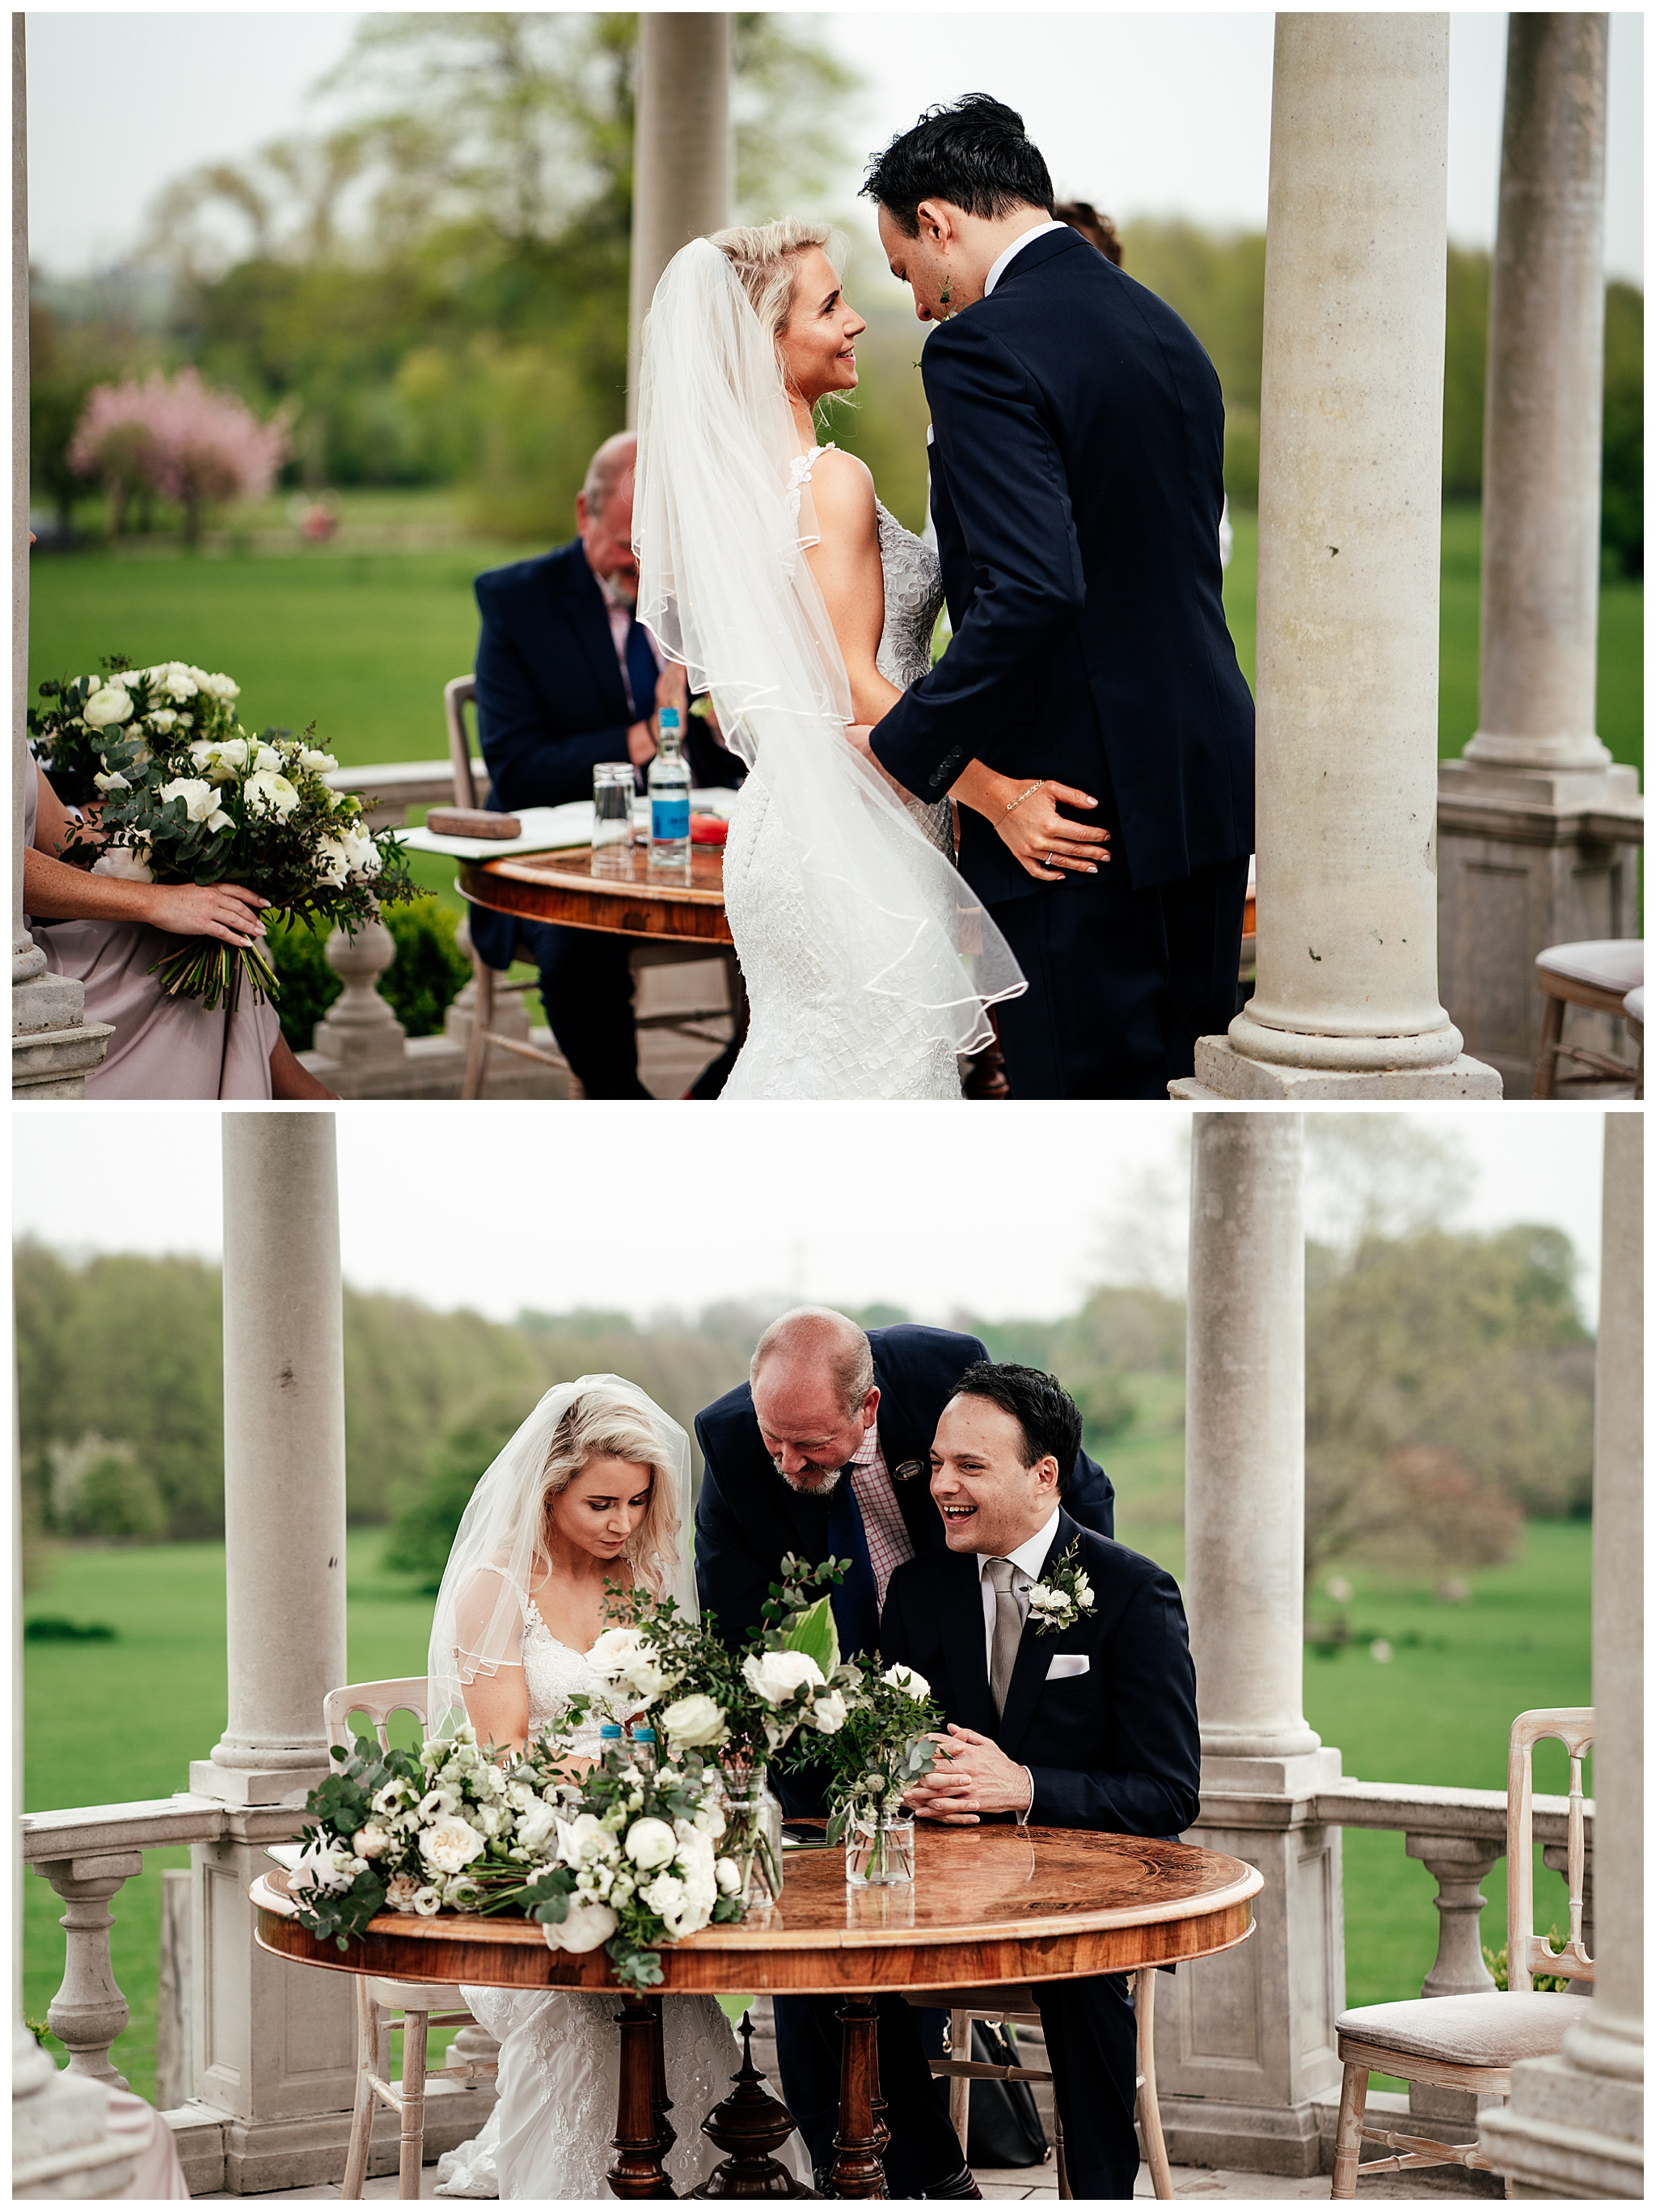 Froyle park wedding in spring